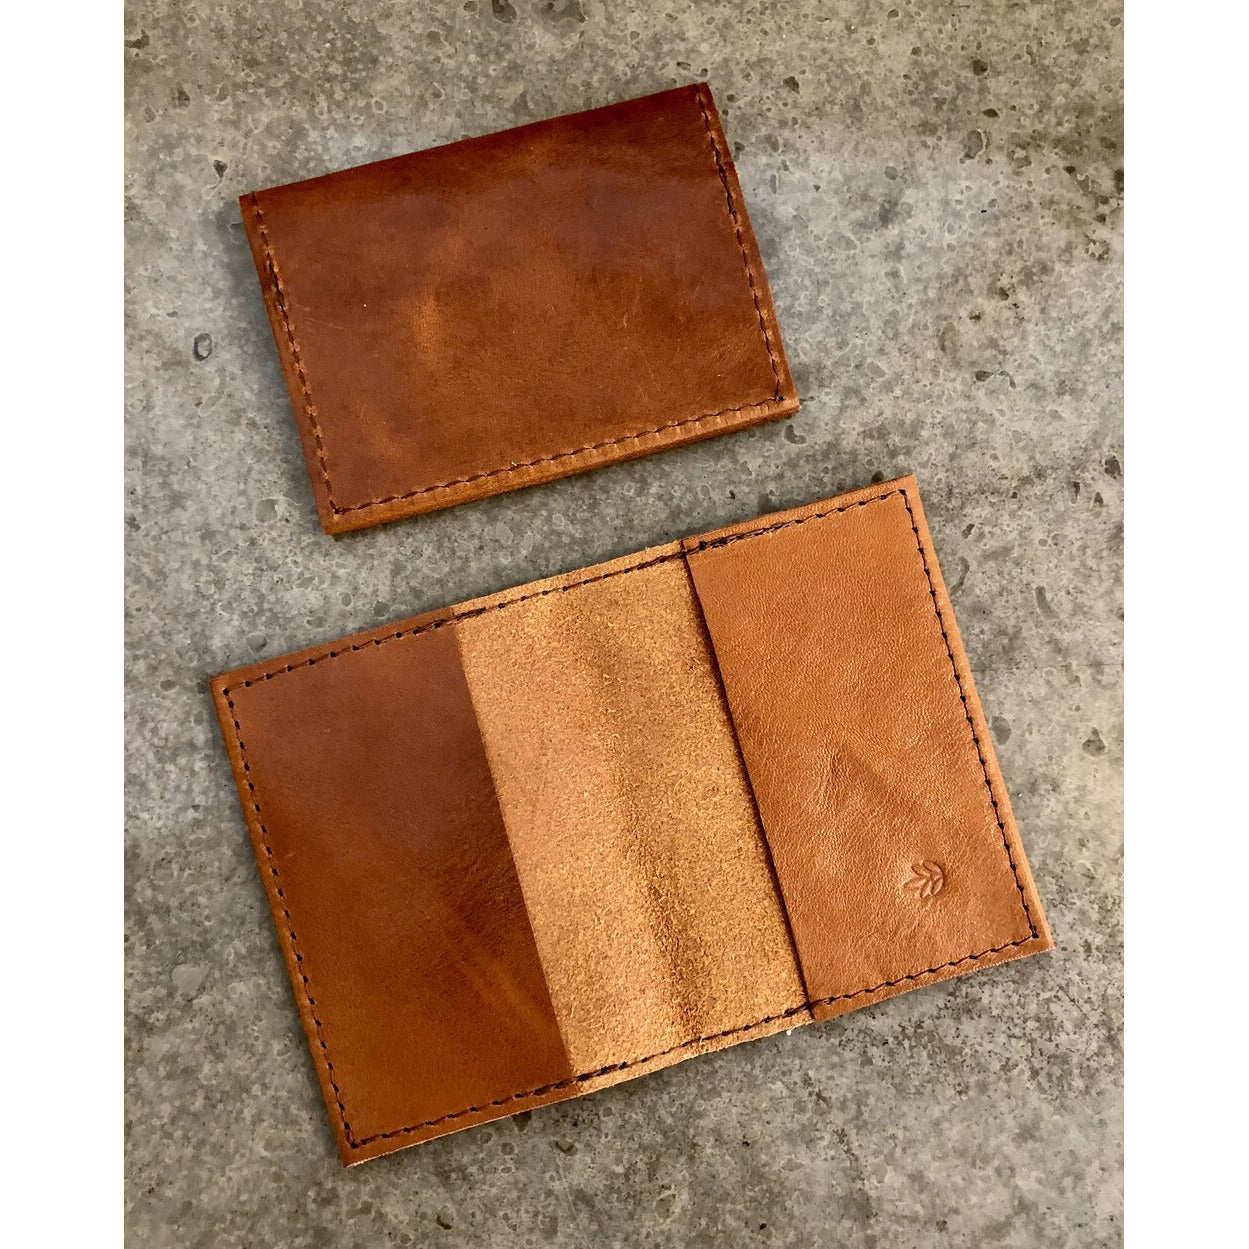 Leather Slimfold Wallet in brown